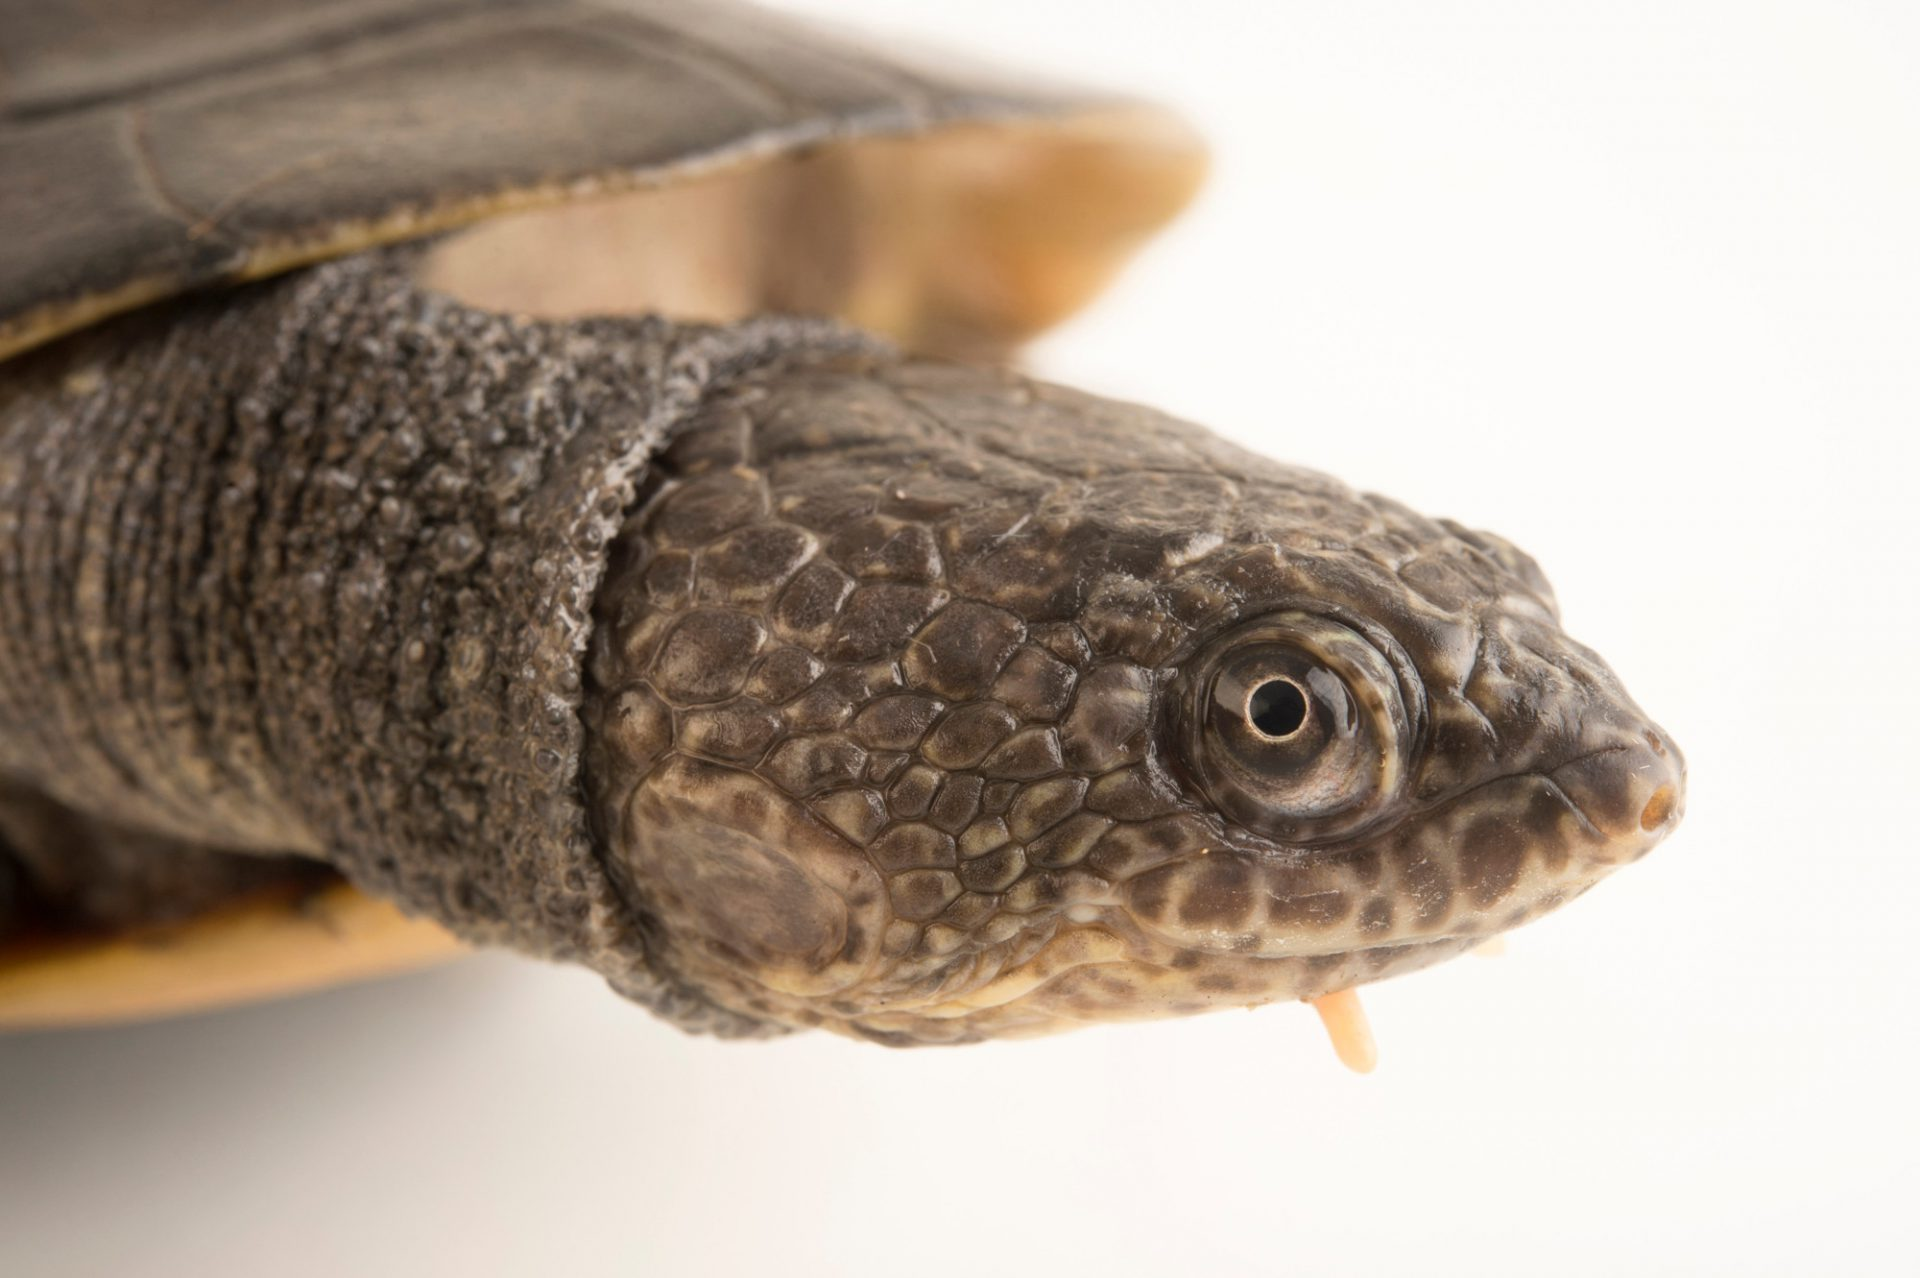 Photo: Toadhead turtle or gibba turtle (Mesoclemmys gibba) at Piscilago Zoo in Bogota, Colombia.